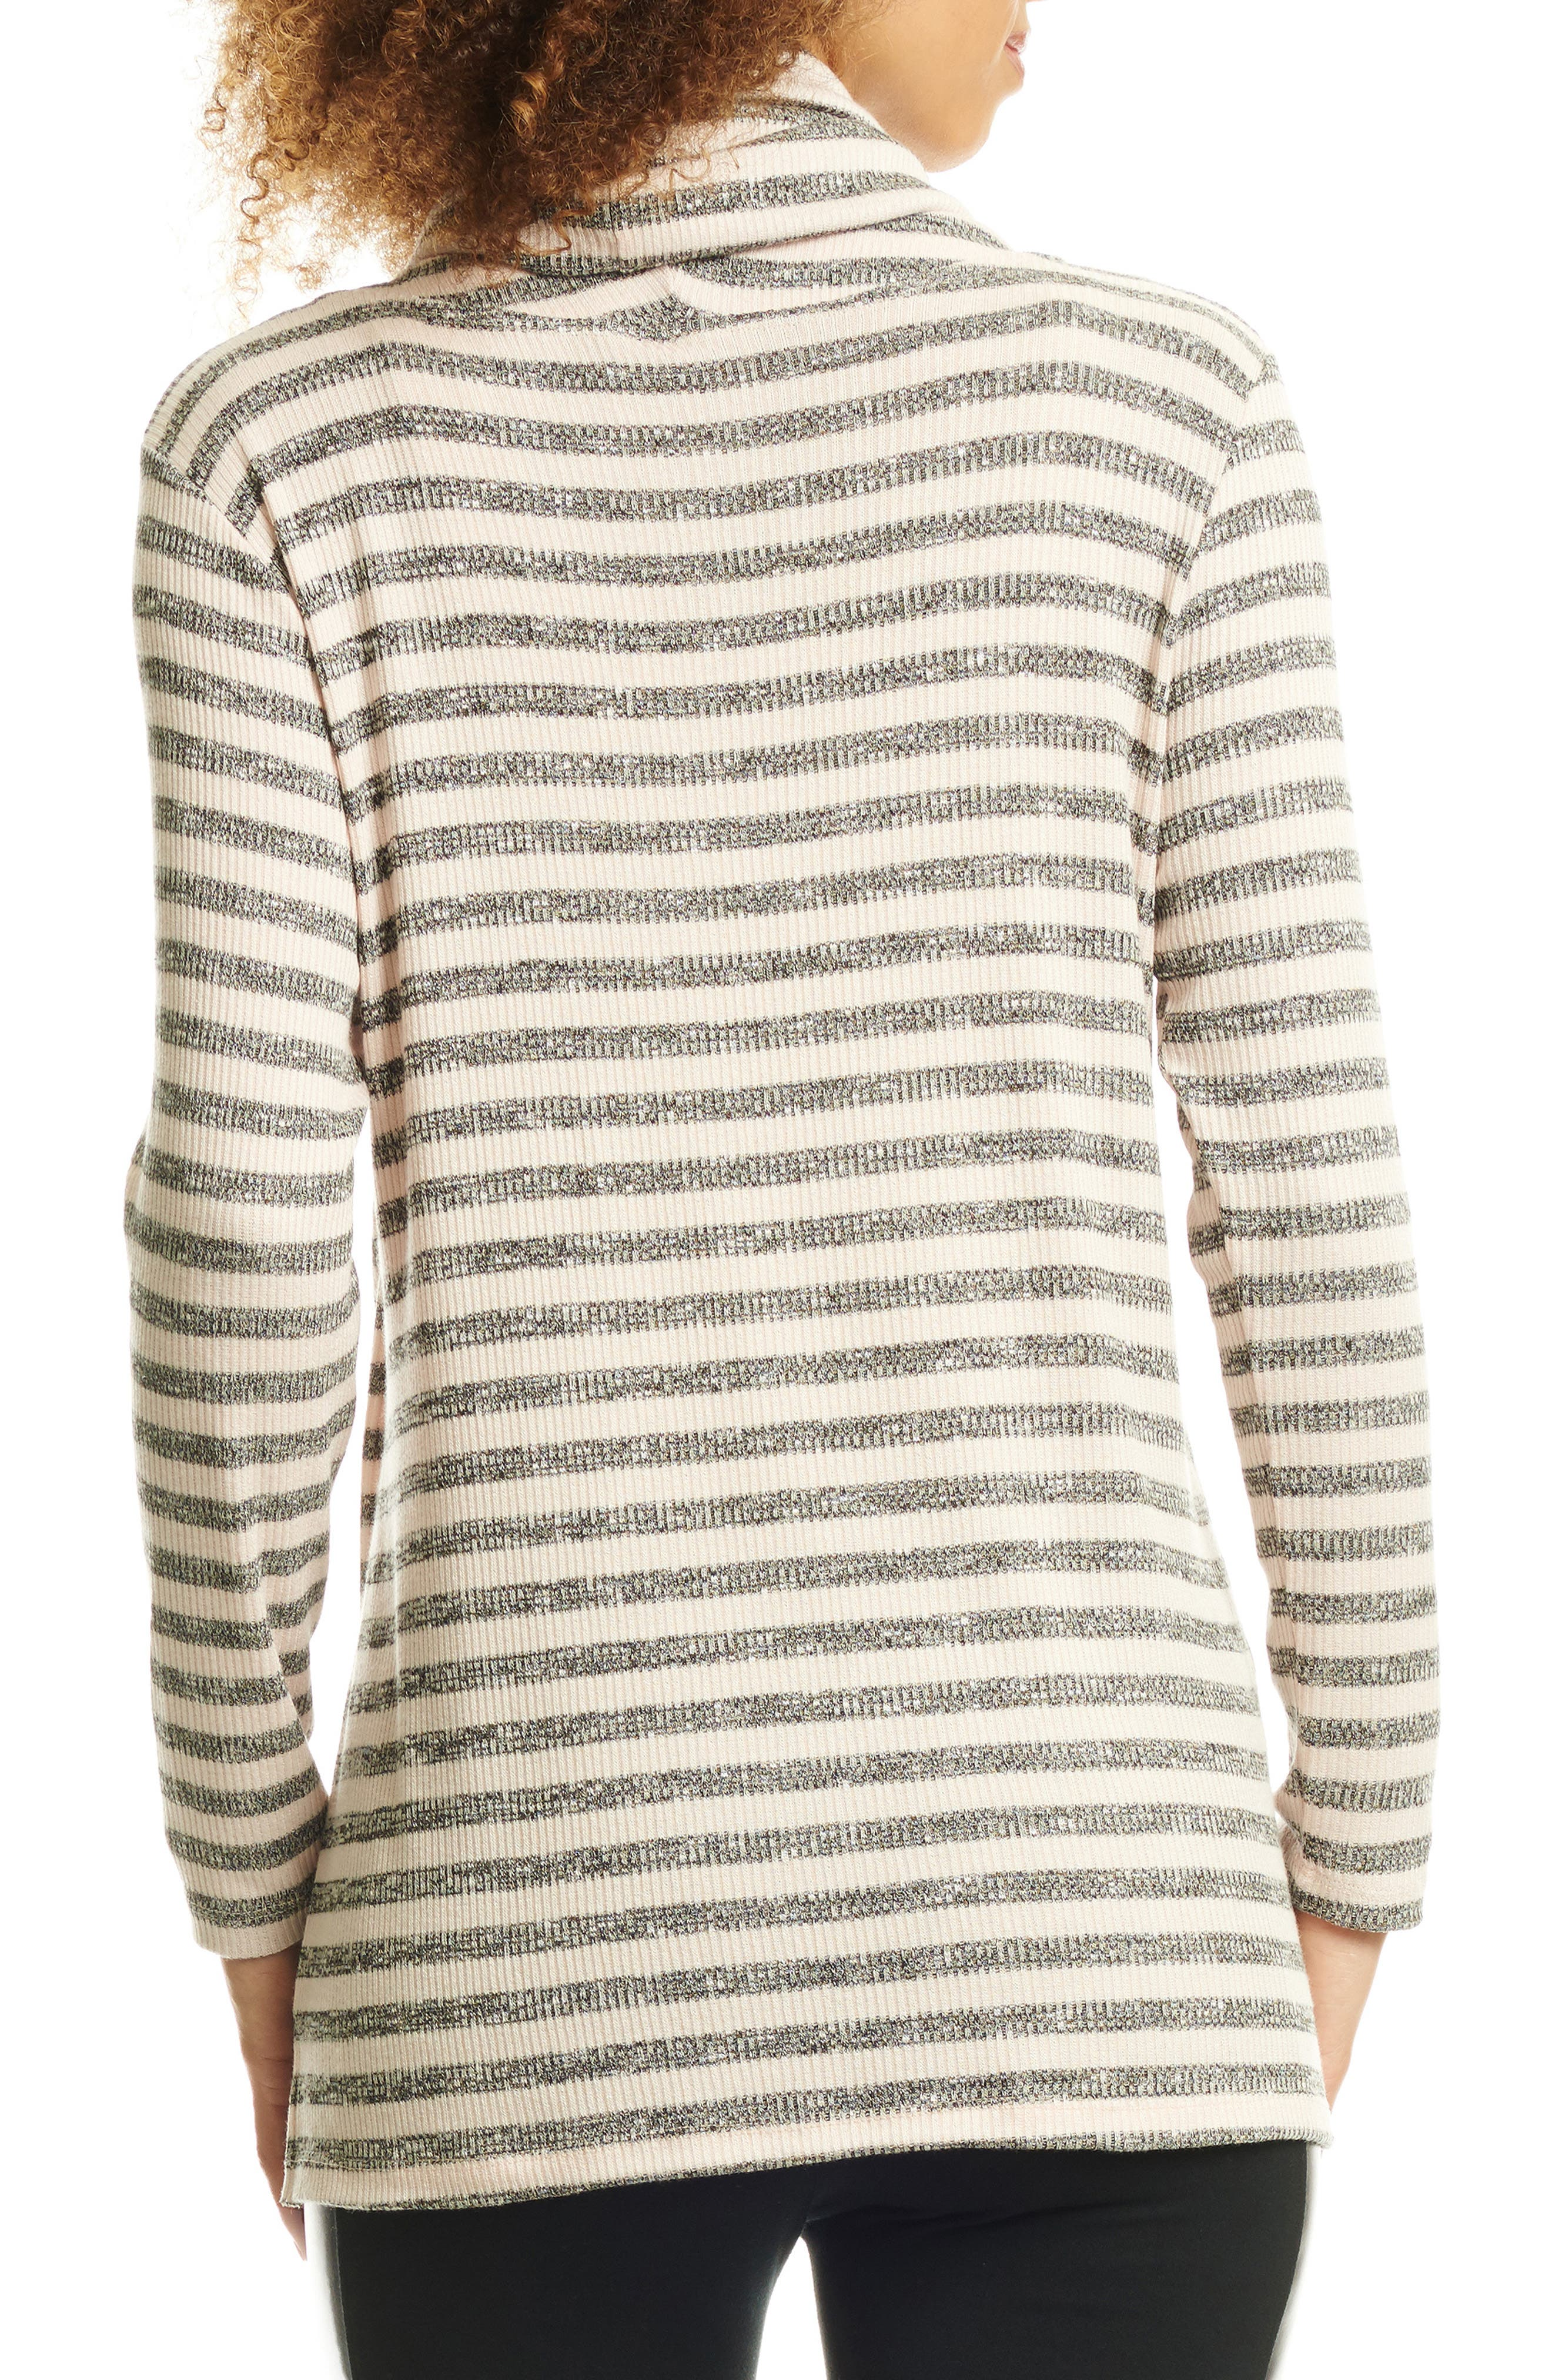 EVERLY GREY, Reina Cowl Neck Maternity/Nursing Top, Alternate thumbnail 2, color, CHARCOAL STRIPE